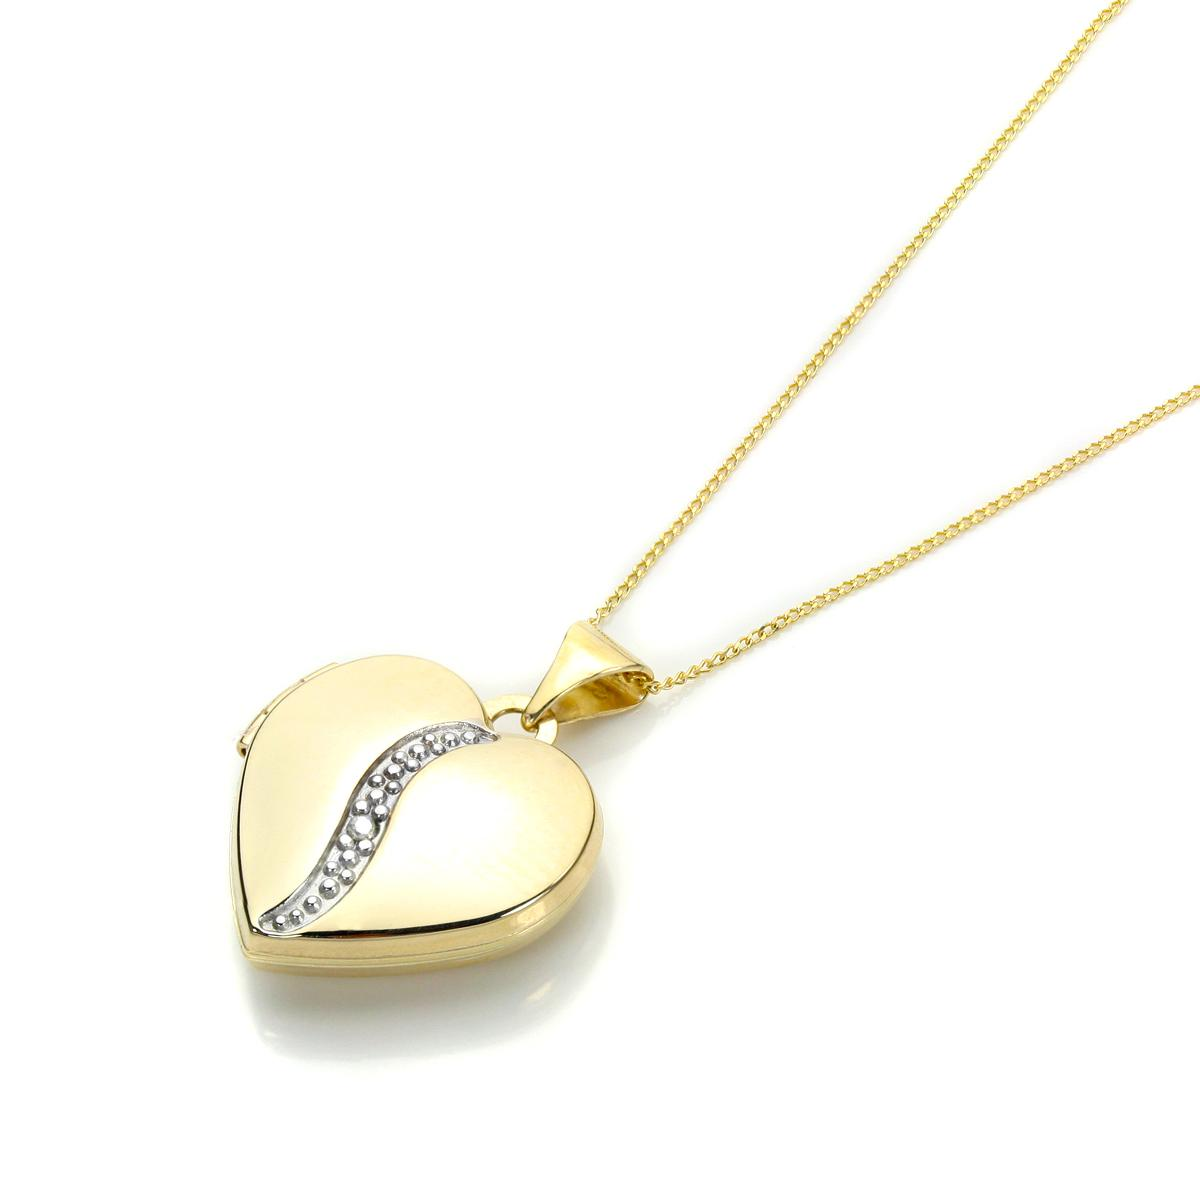 locket pendant beaverbrooks context p the large heart gold white